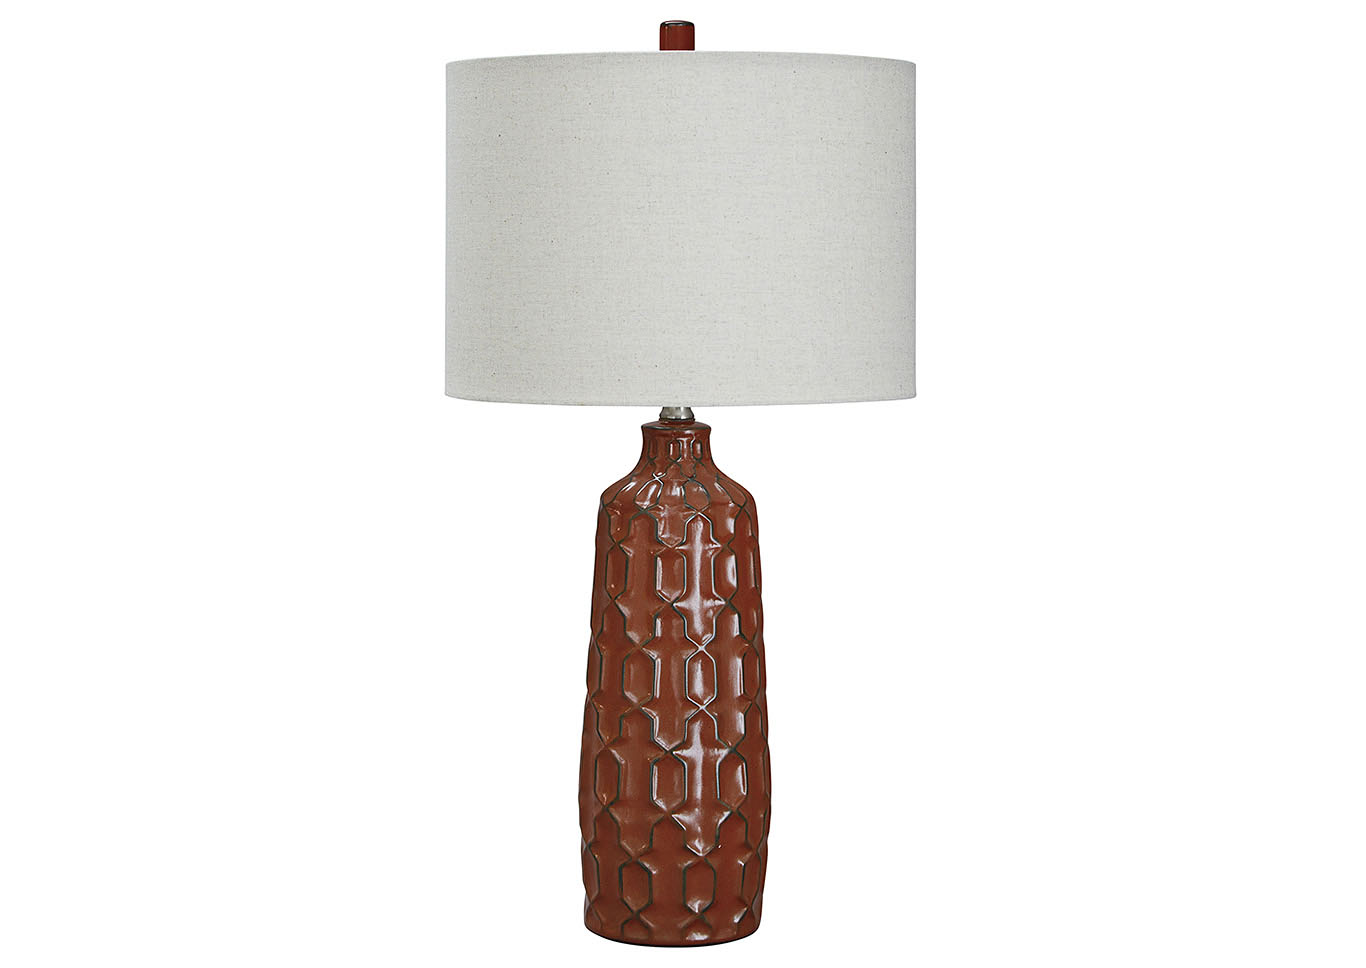 Mab Orange 2 Piece Ceramic Table Lamp Set,Signature Design By Ashley